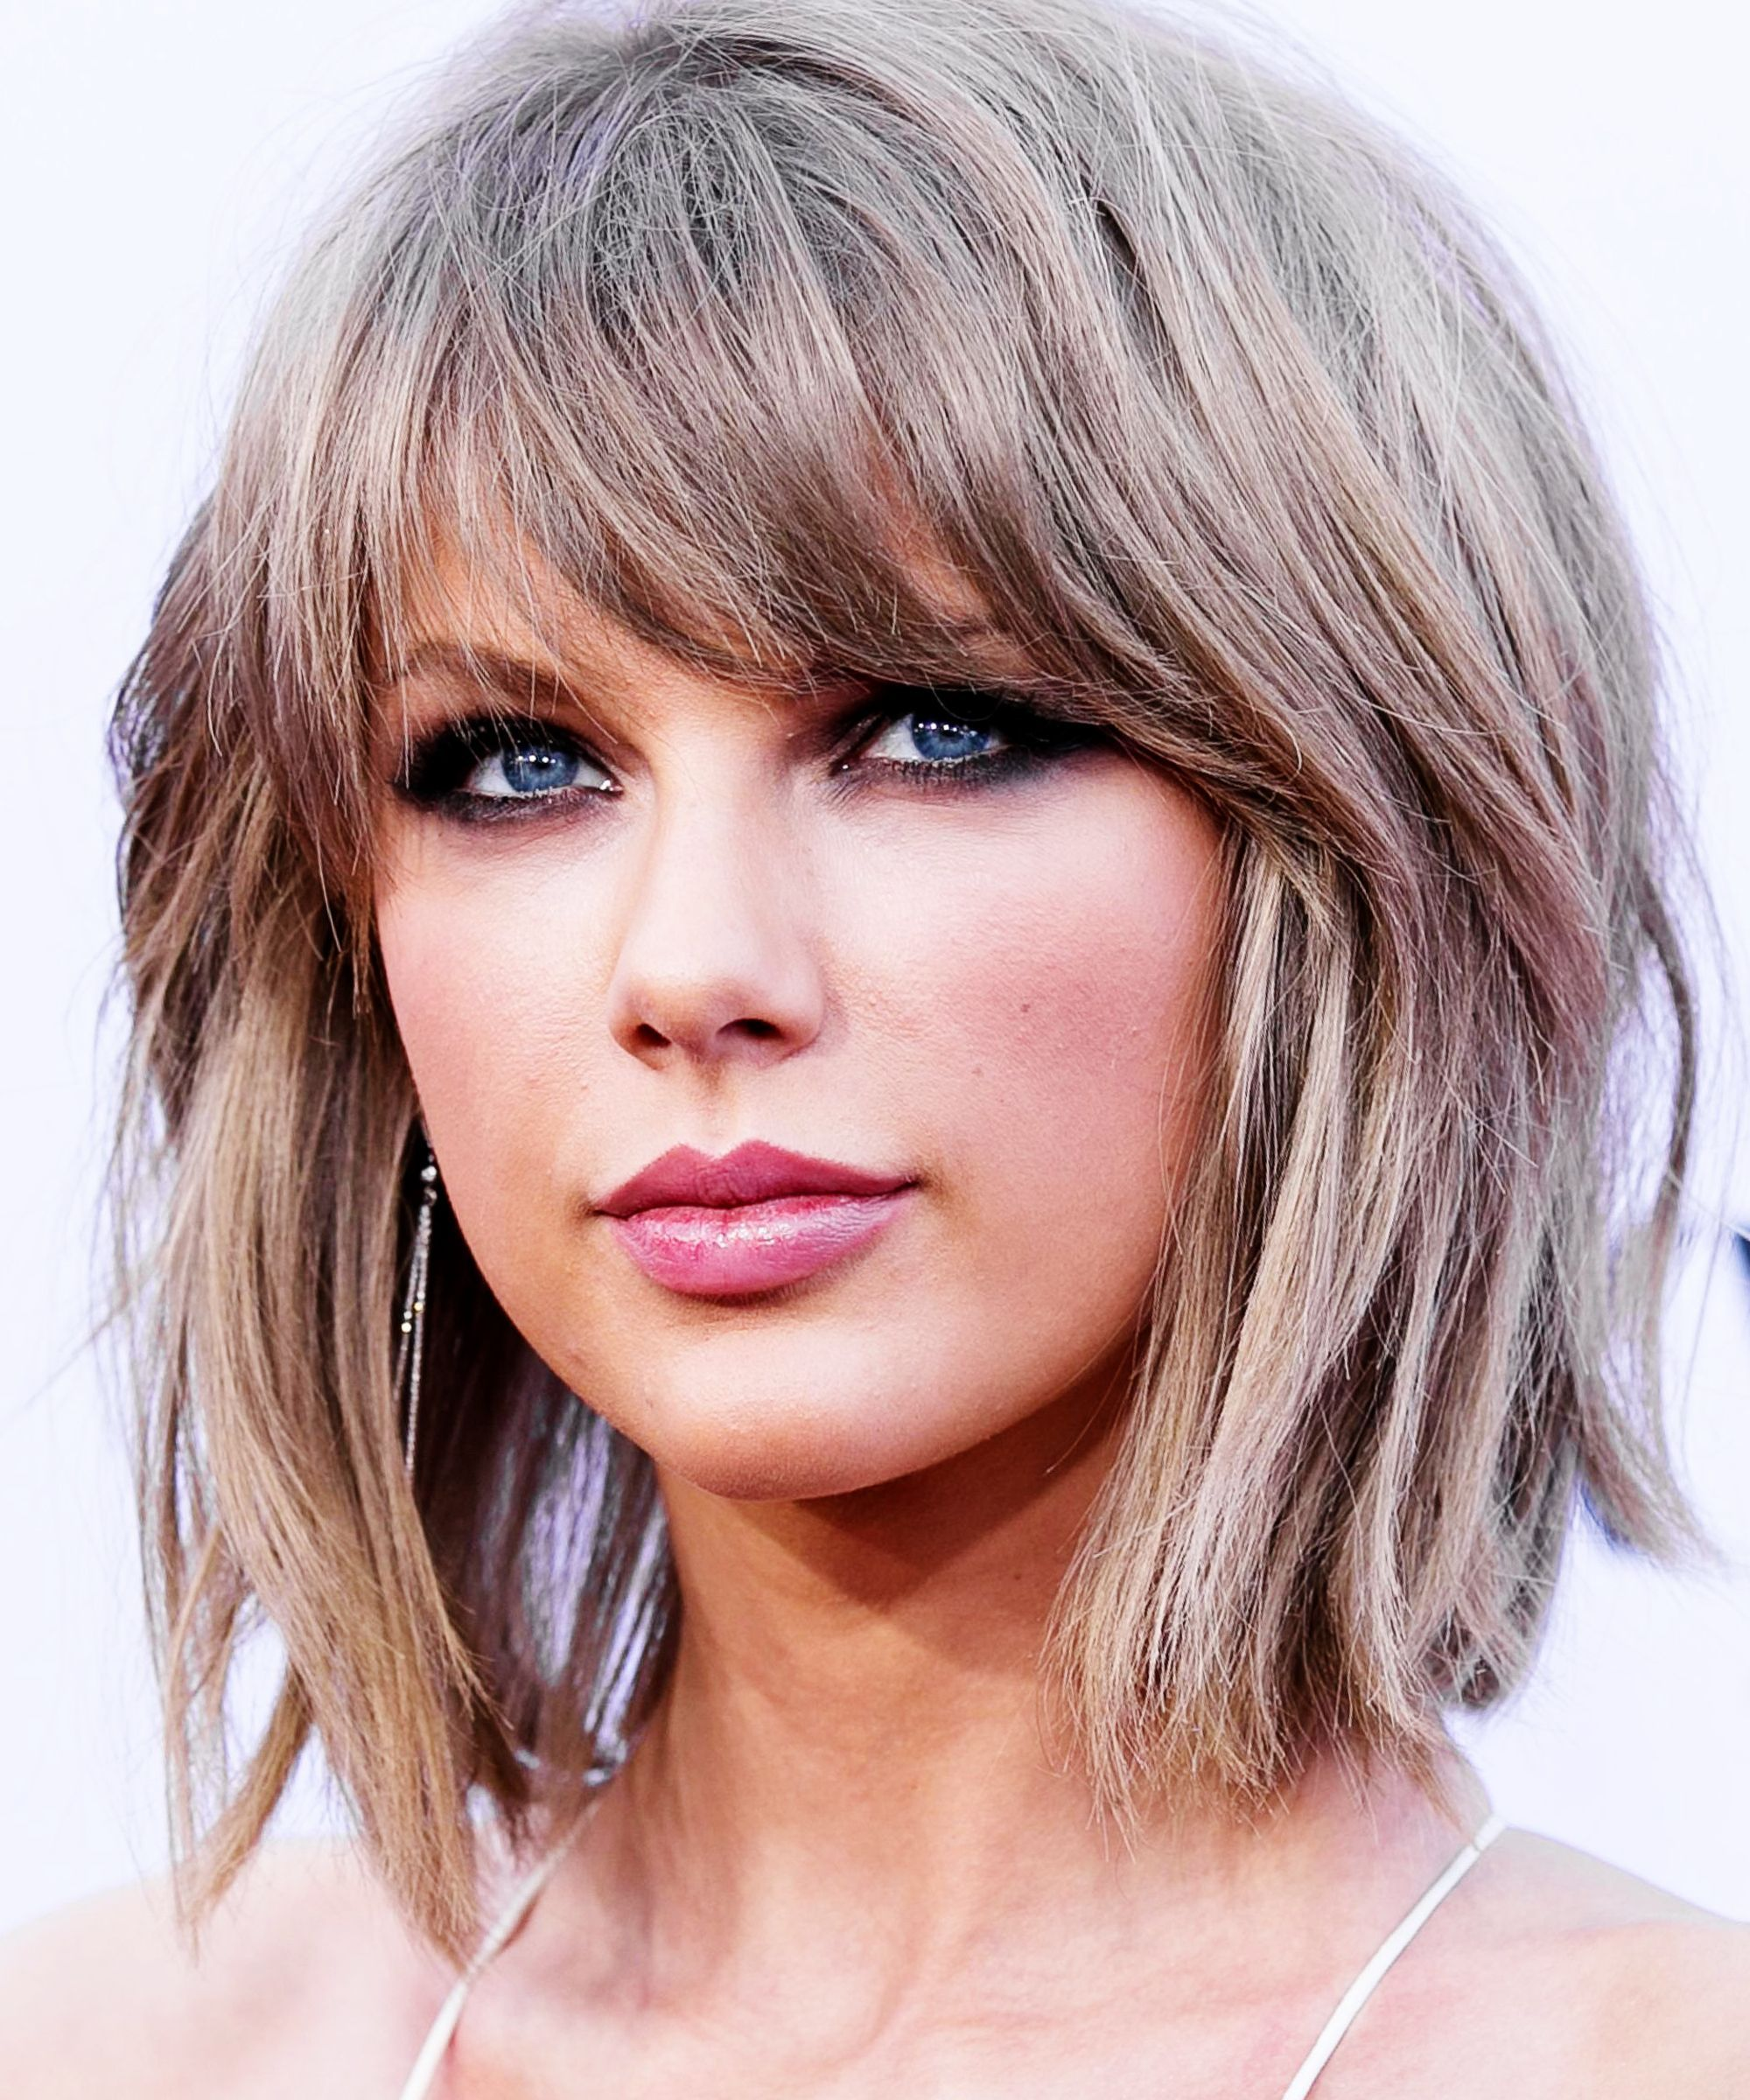 taylor swift goes super short at the grammys | taylor swift hair